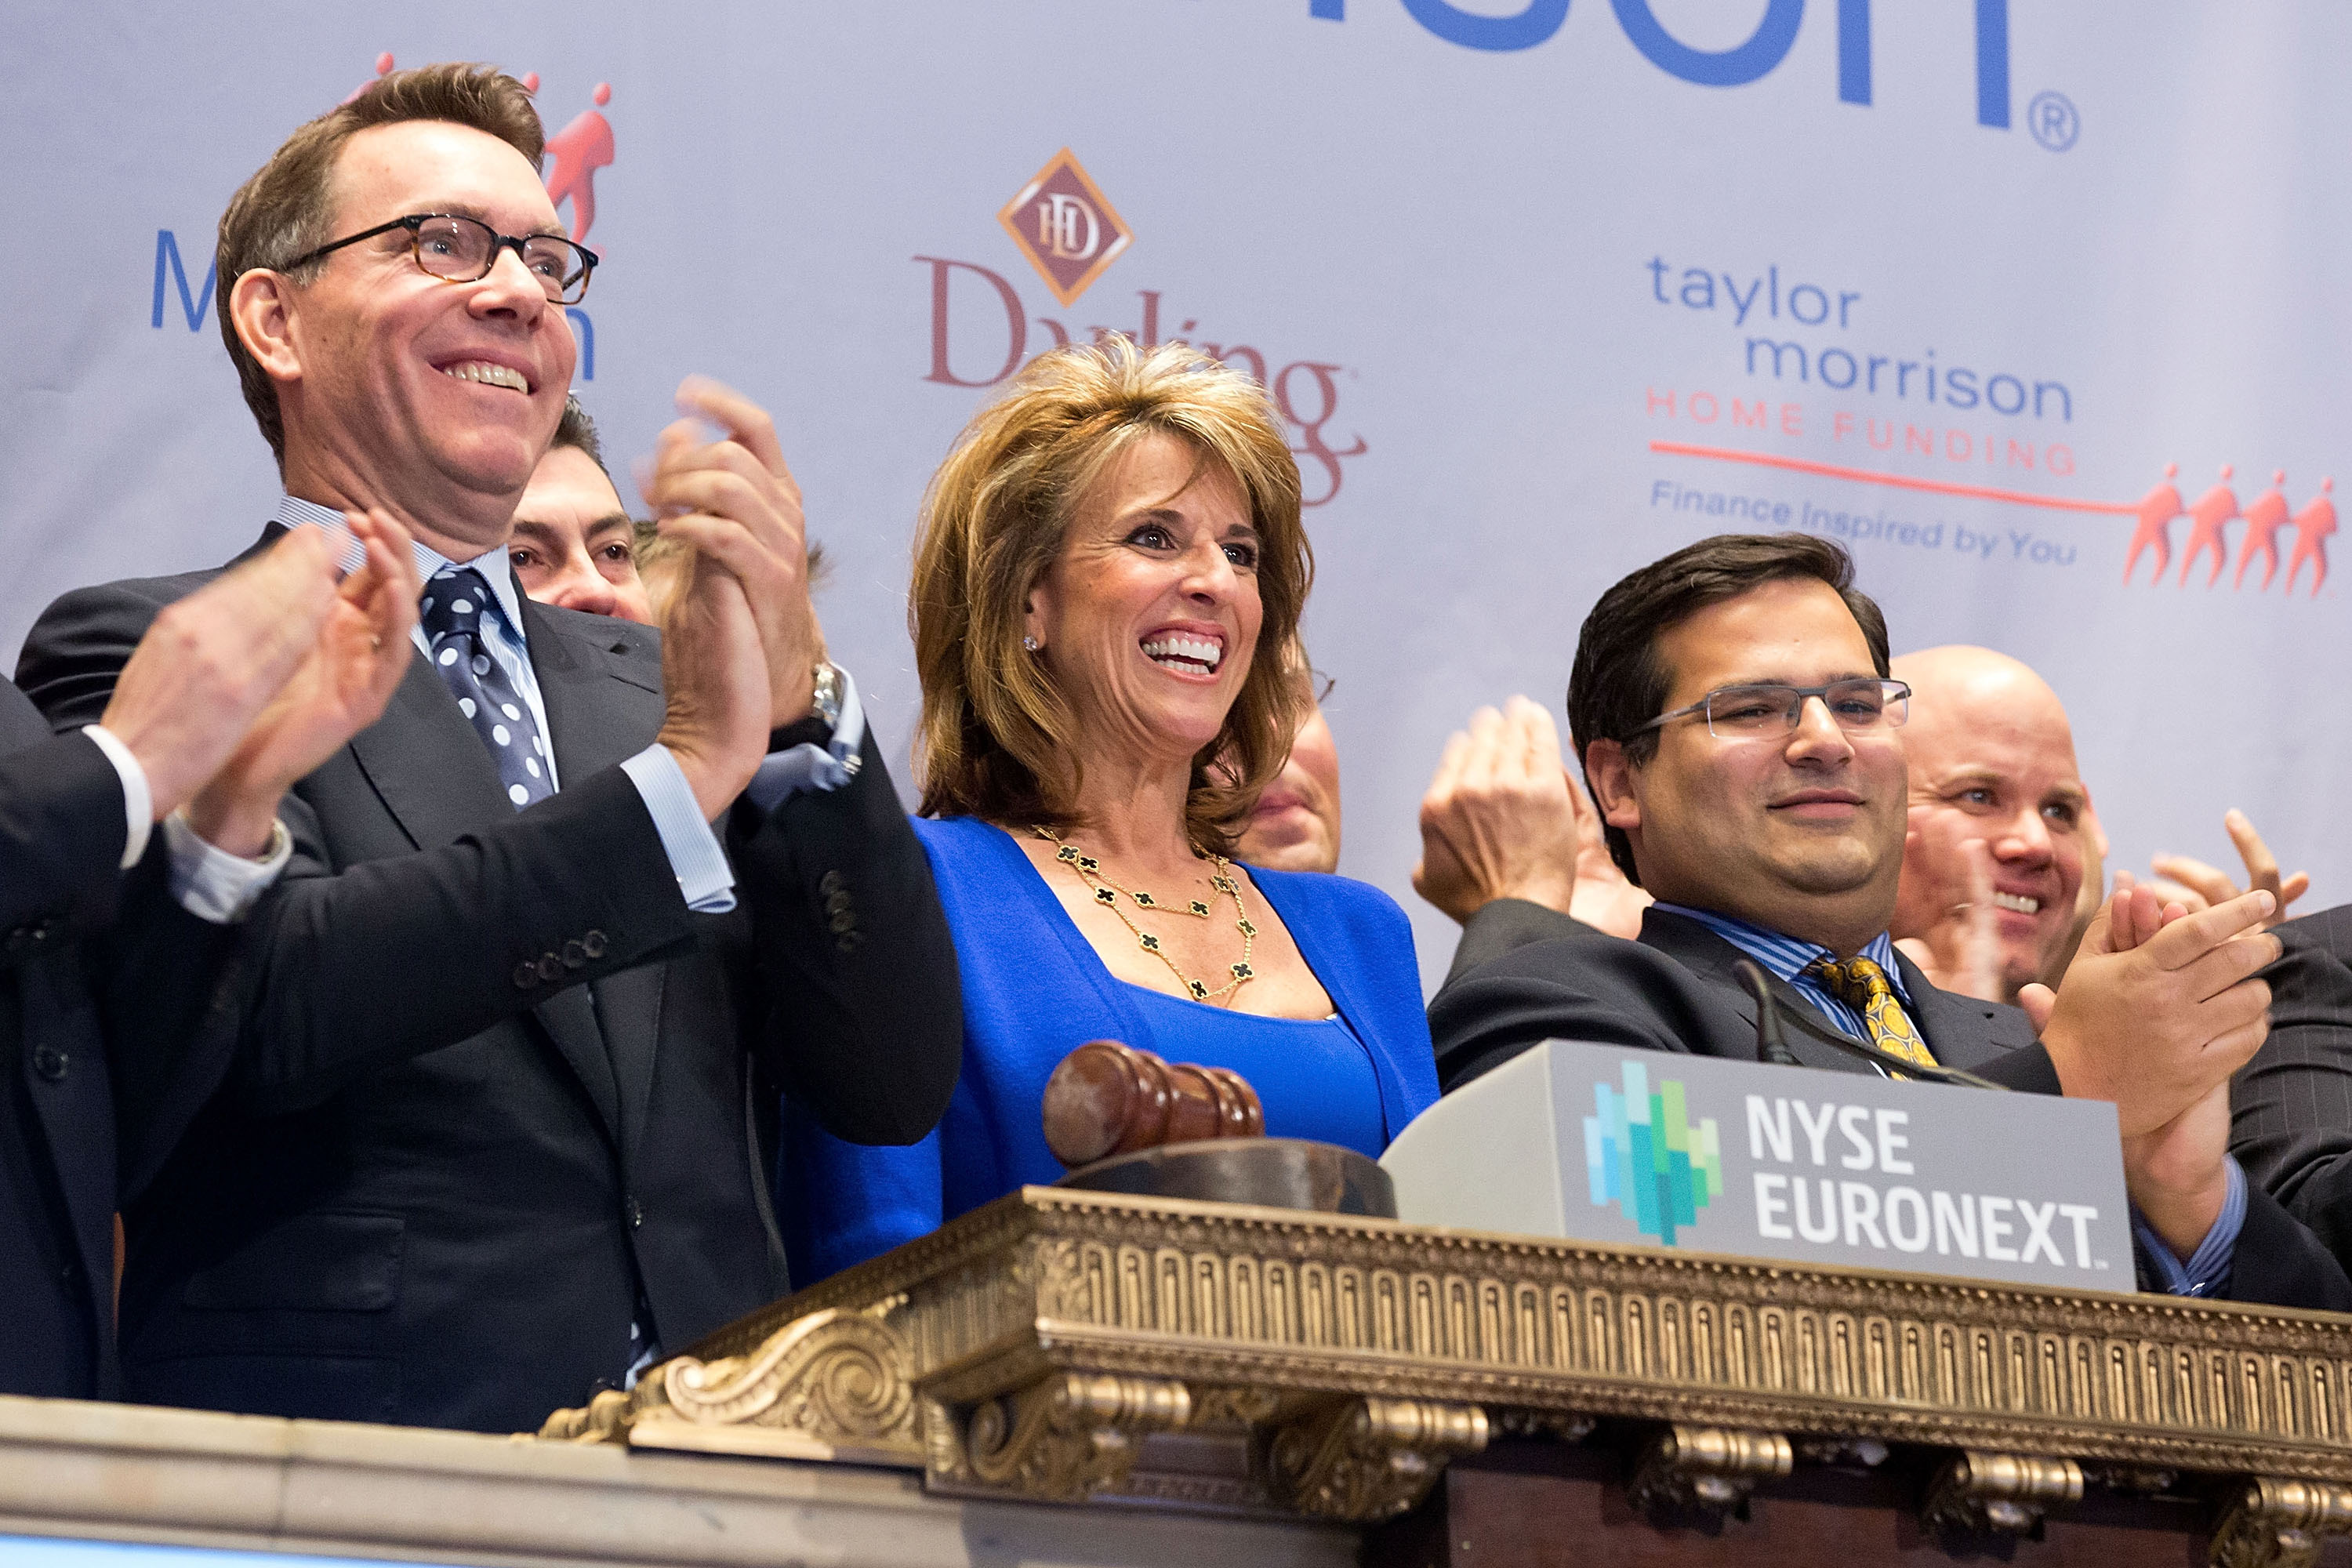 Taylor Morrison President and Chief Executive Officer Sheryl Palmer in the center of the trading crowd as the company's stock opens on the NYSE. (Source: NYSE Euronext photo)